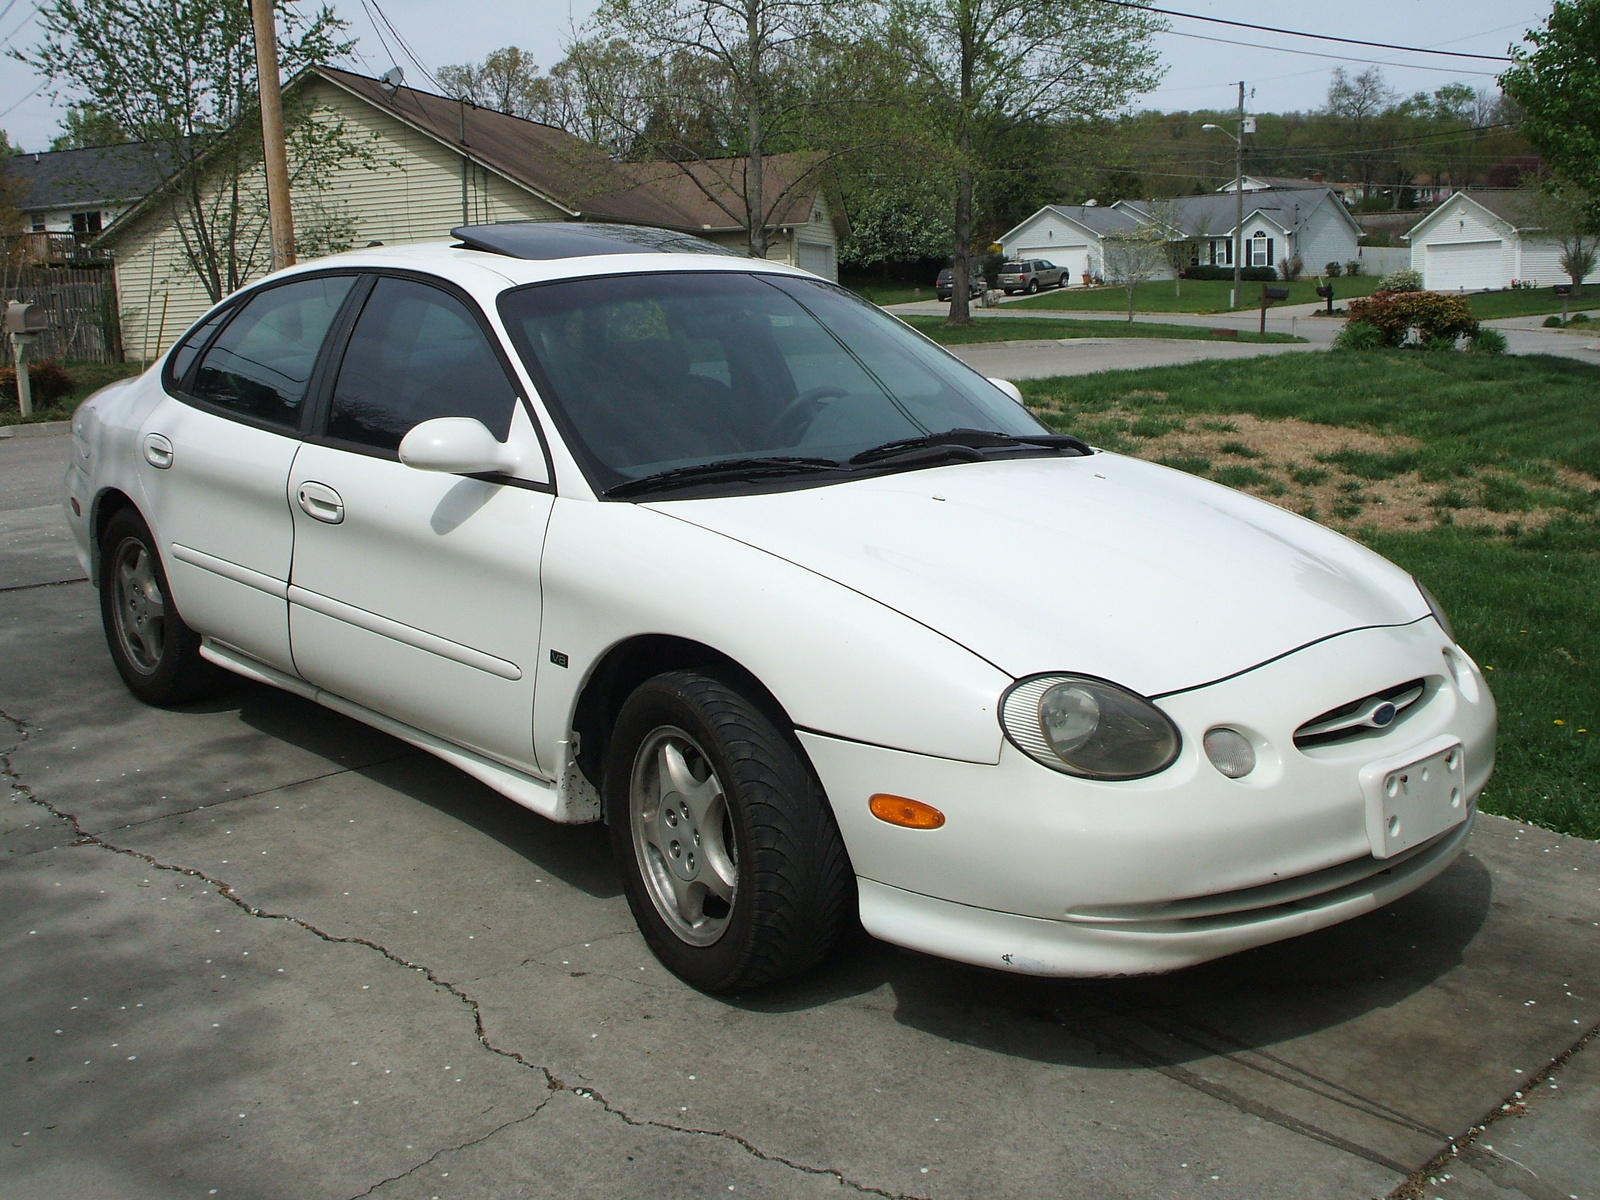 1998 Ford Taurus 4 Dr SHO Sedan picture